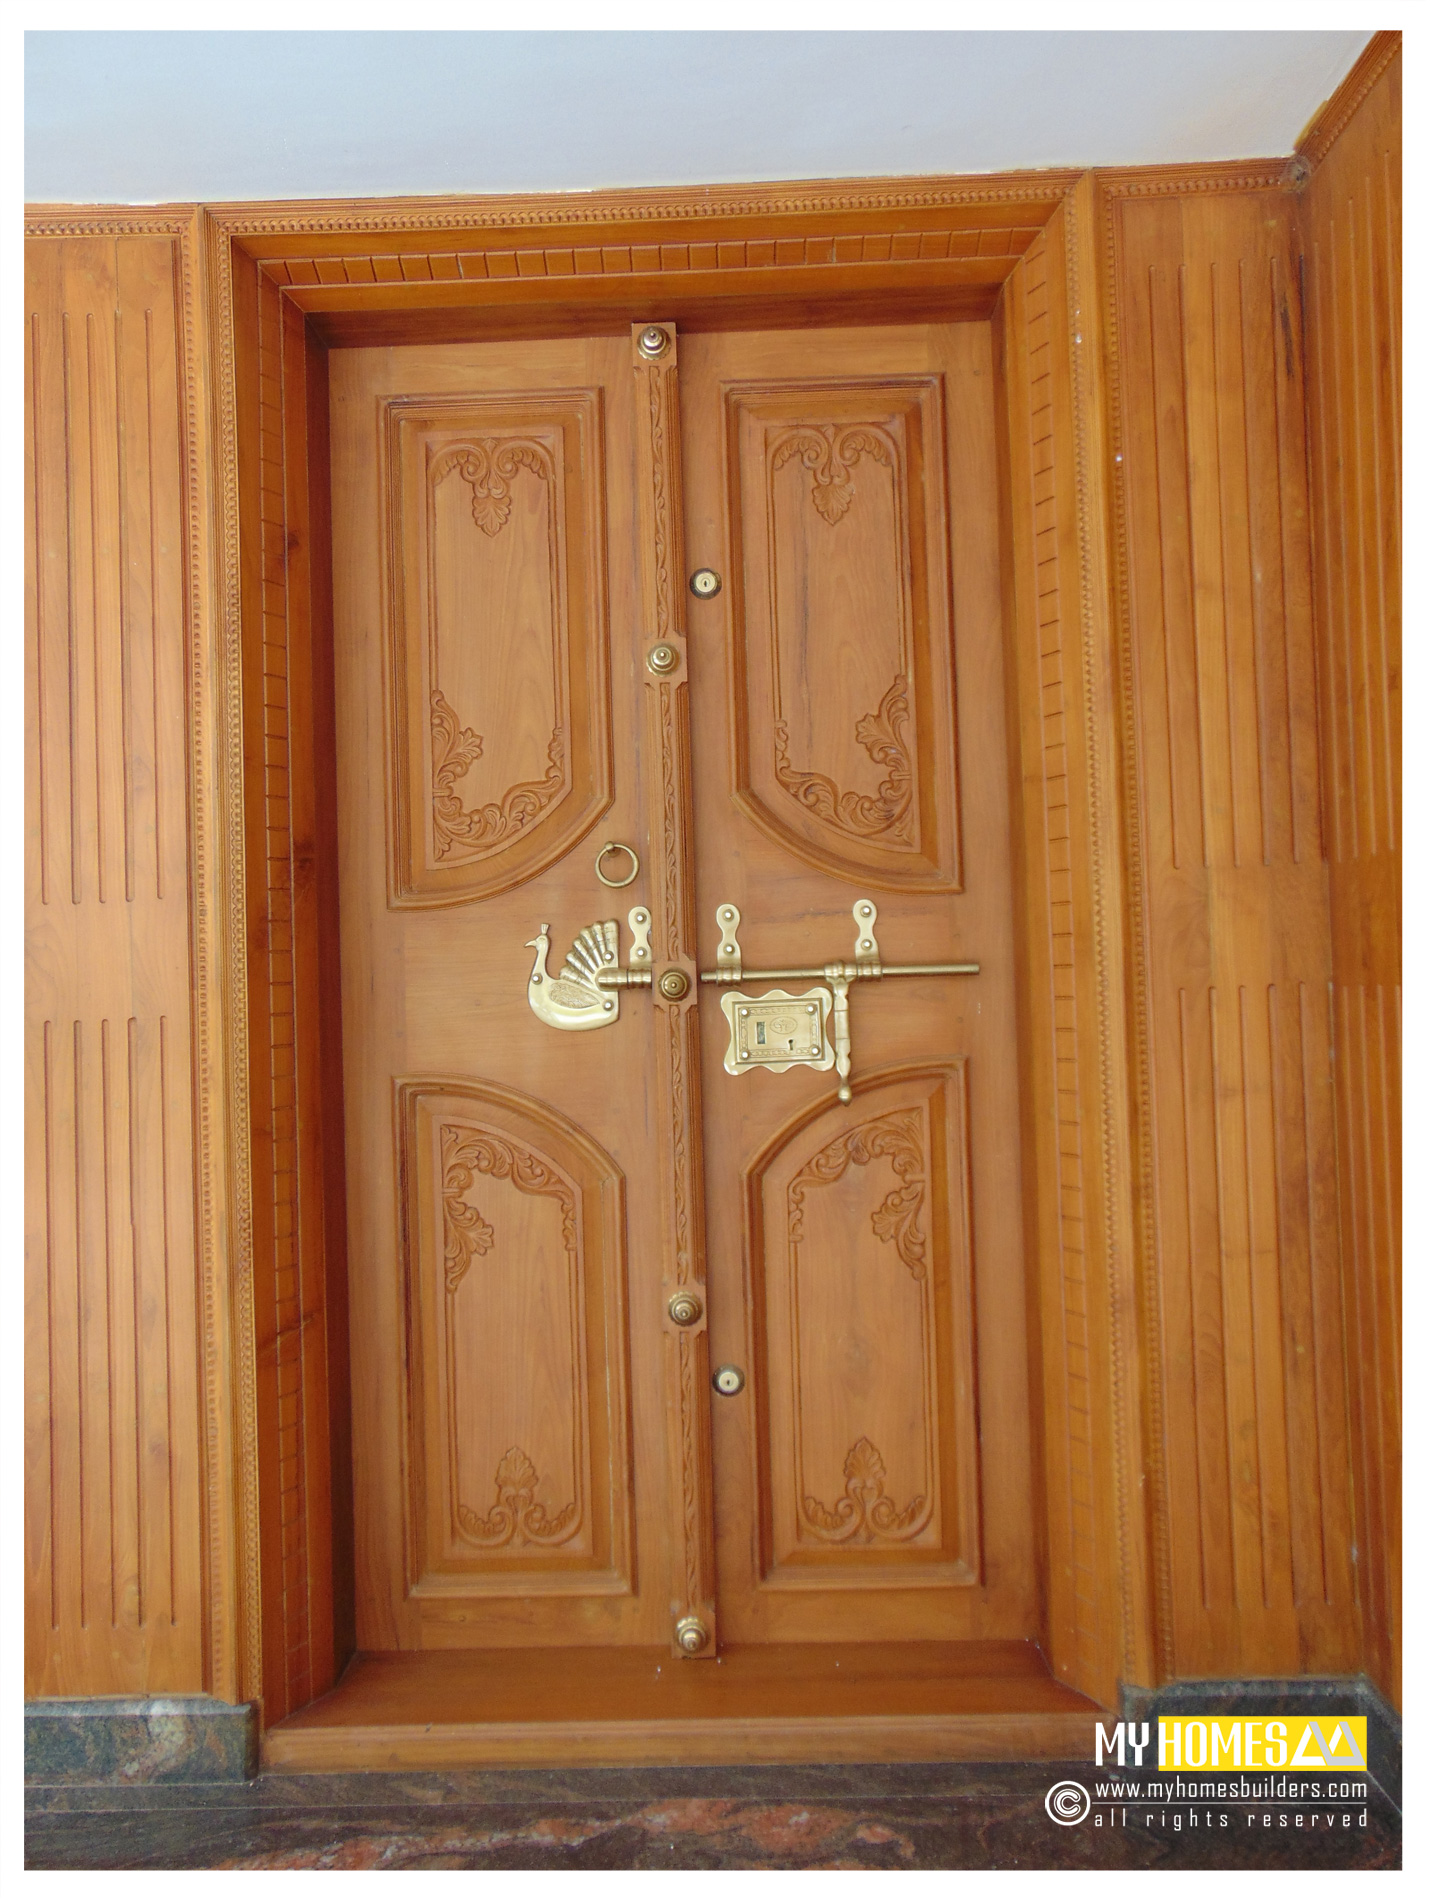 New idea for homes main door designs in kerala india for New main door design